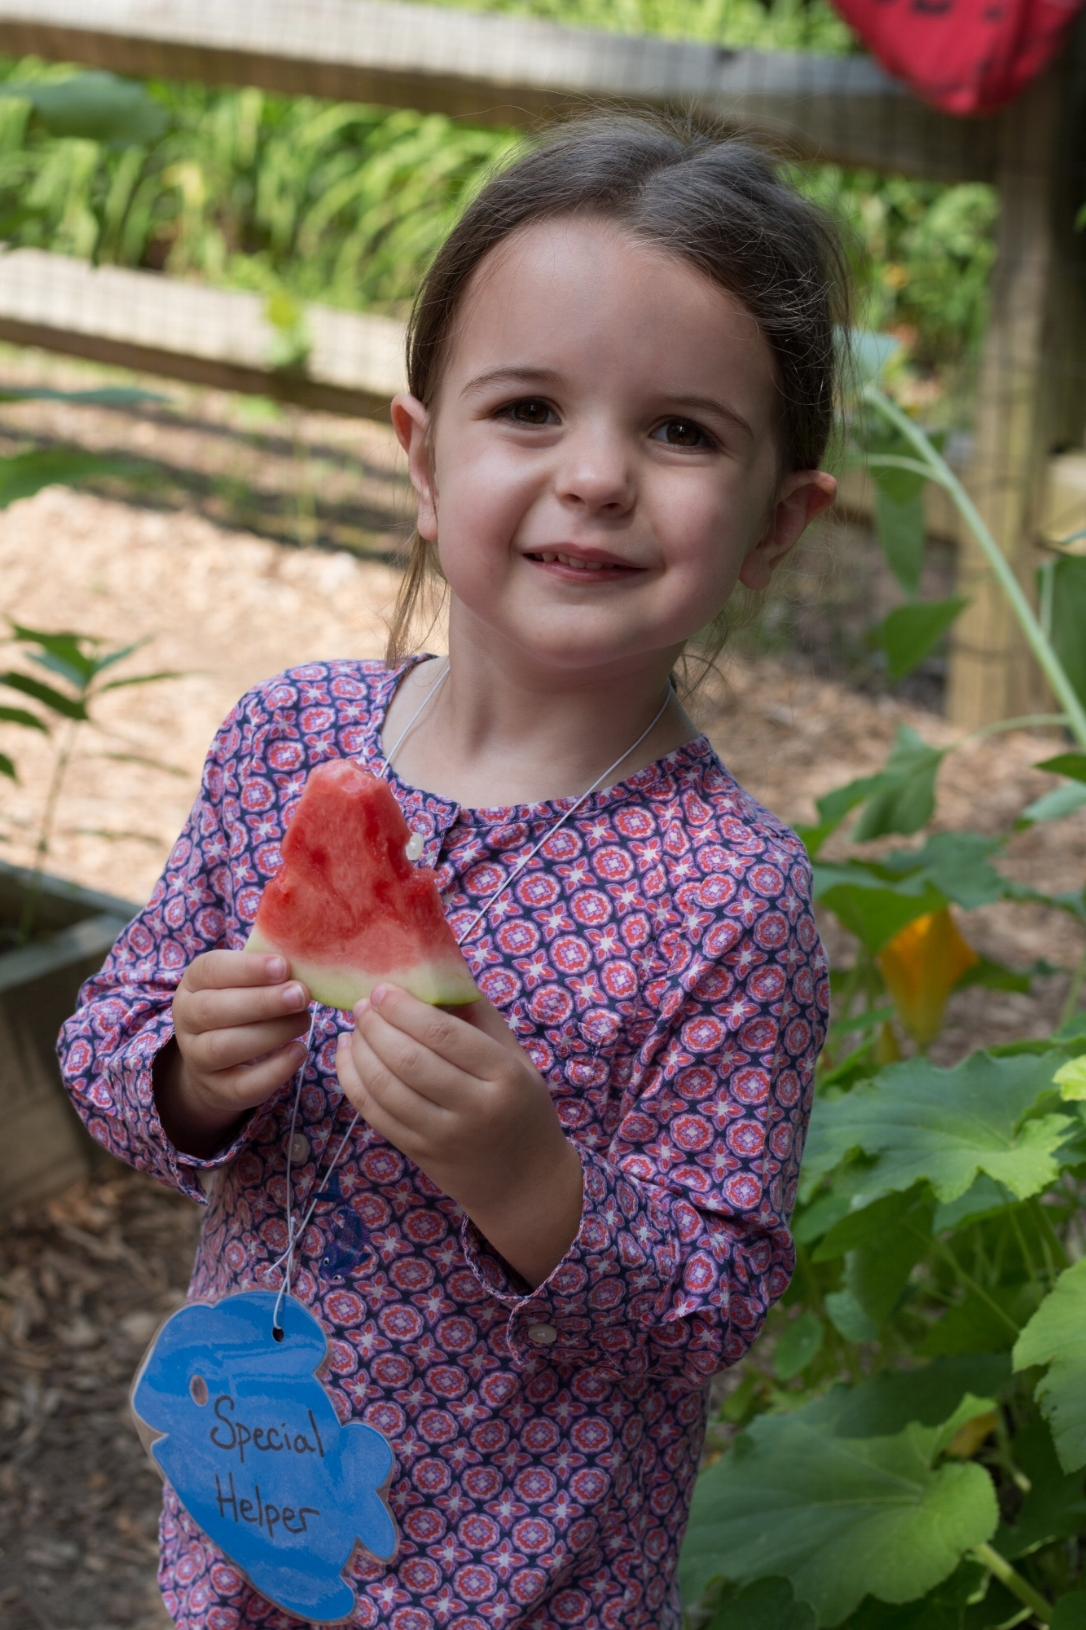 Watermelon Social - On the last day of the school year, all students and parents are invited to the playground for a watermelon social.  Families bring picnic lunches, and celebrate all of the ways their children have grown and learned over the school year!